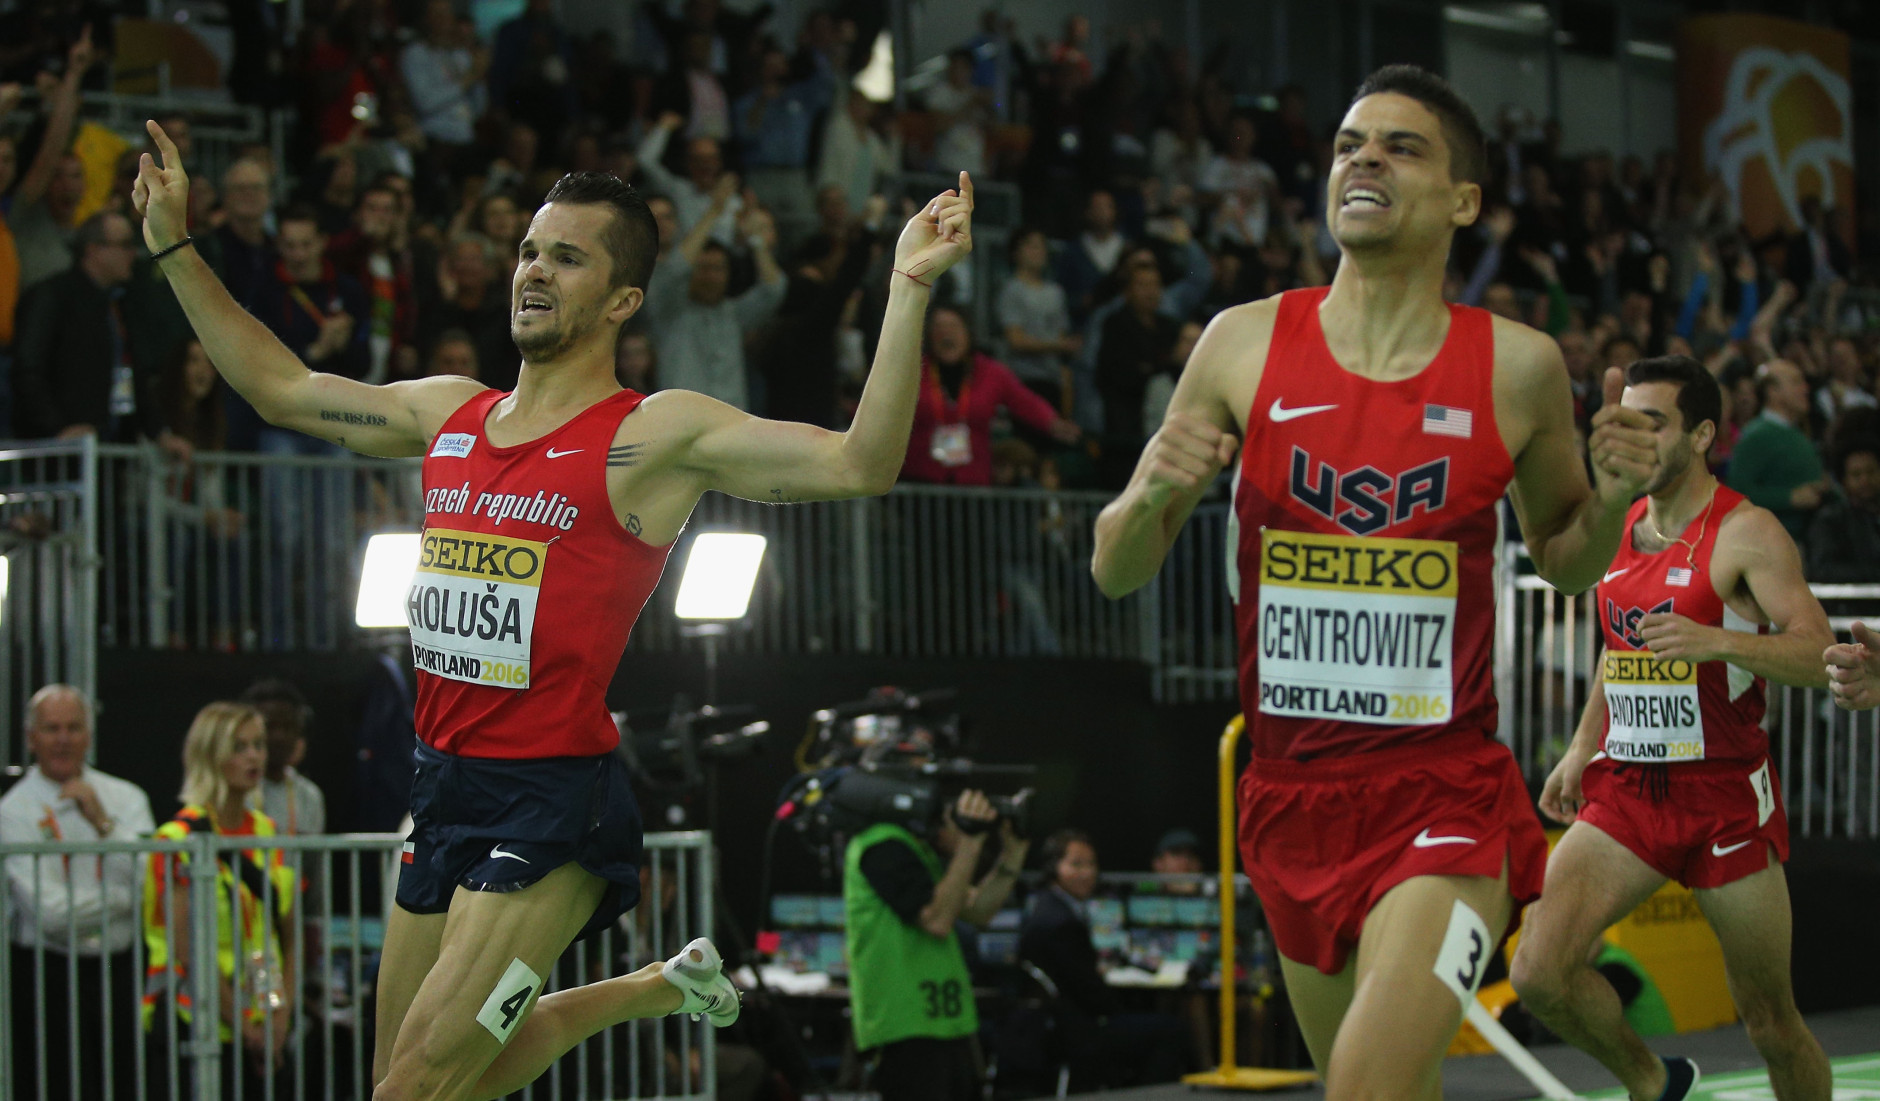 PORTLAND, OR - MARCH 20:  Matthew Centrowitz of the United States (C) crosses the line to win gold ahead of Jakub Holusa of the Czech Republic (L) in the Men's 1500 Metres Final during day four of the IAAF World Indoor Championships at Oregon Convention Center on March 20, 2016 in Portland, Oregon.  (Photo by Ian Walton/Getty Images for IAAF)